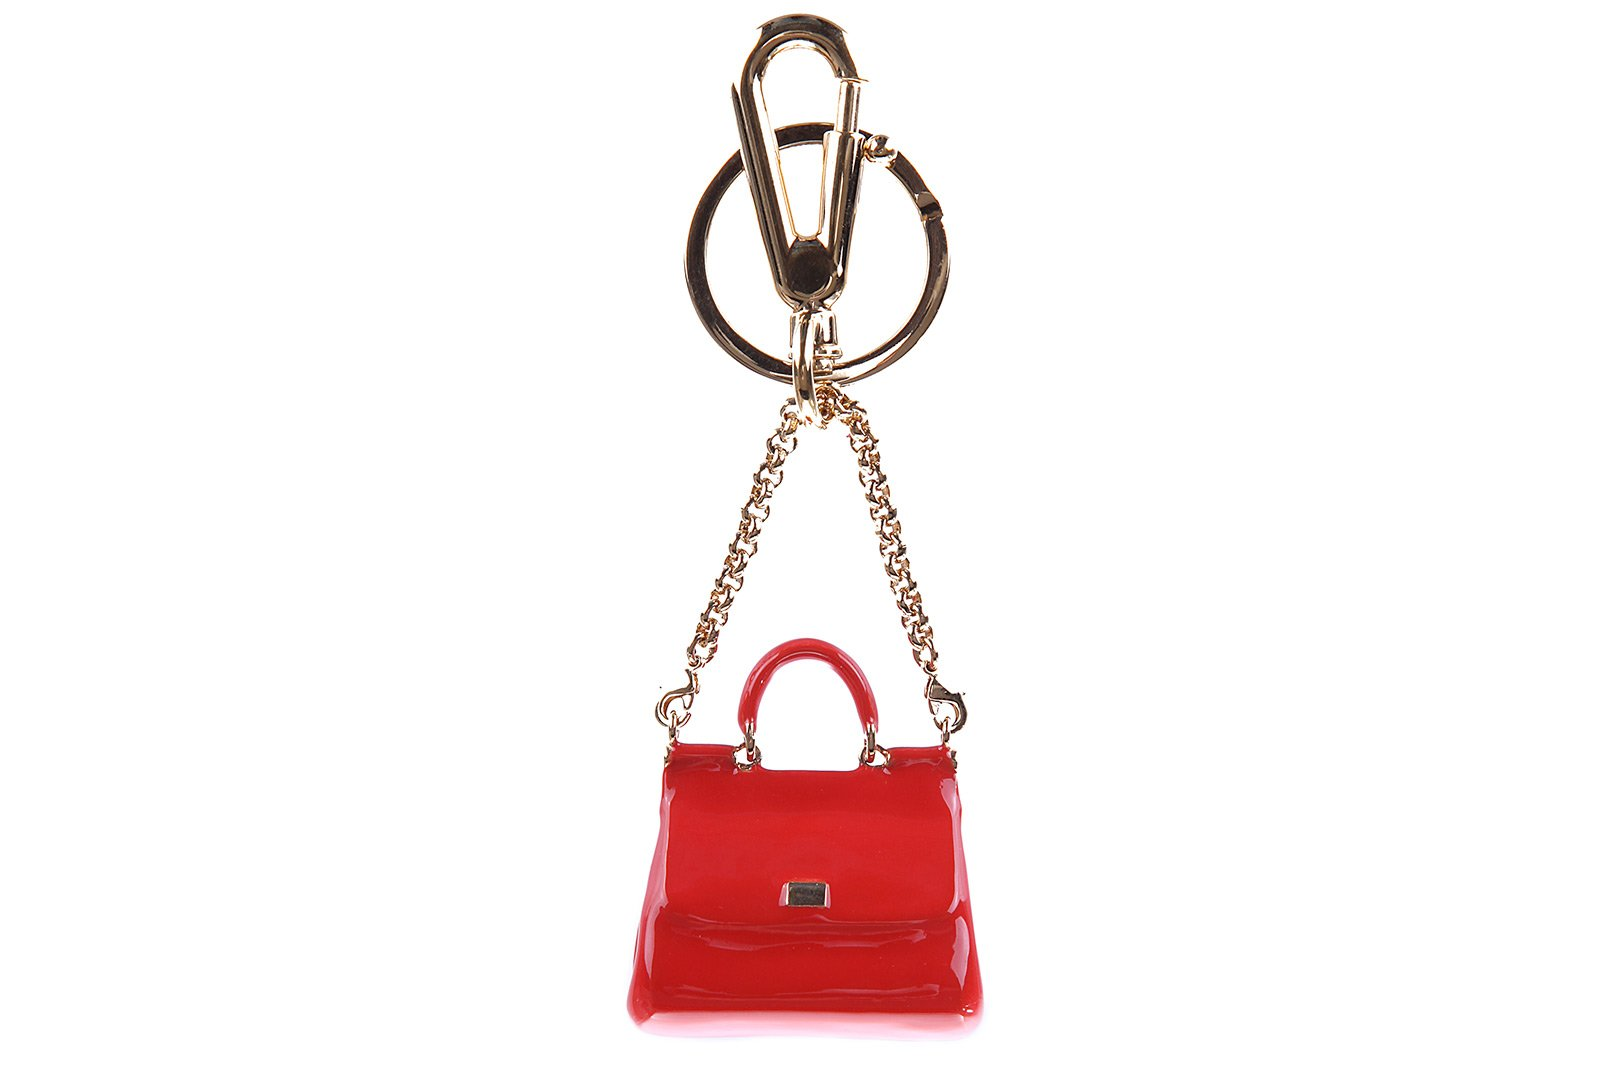 Dolce&Gabbana women's steel keychain key holder red